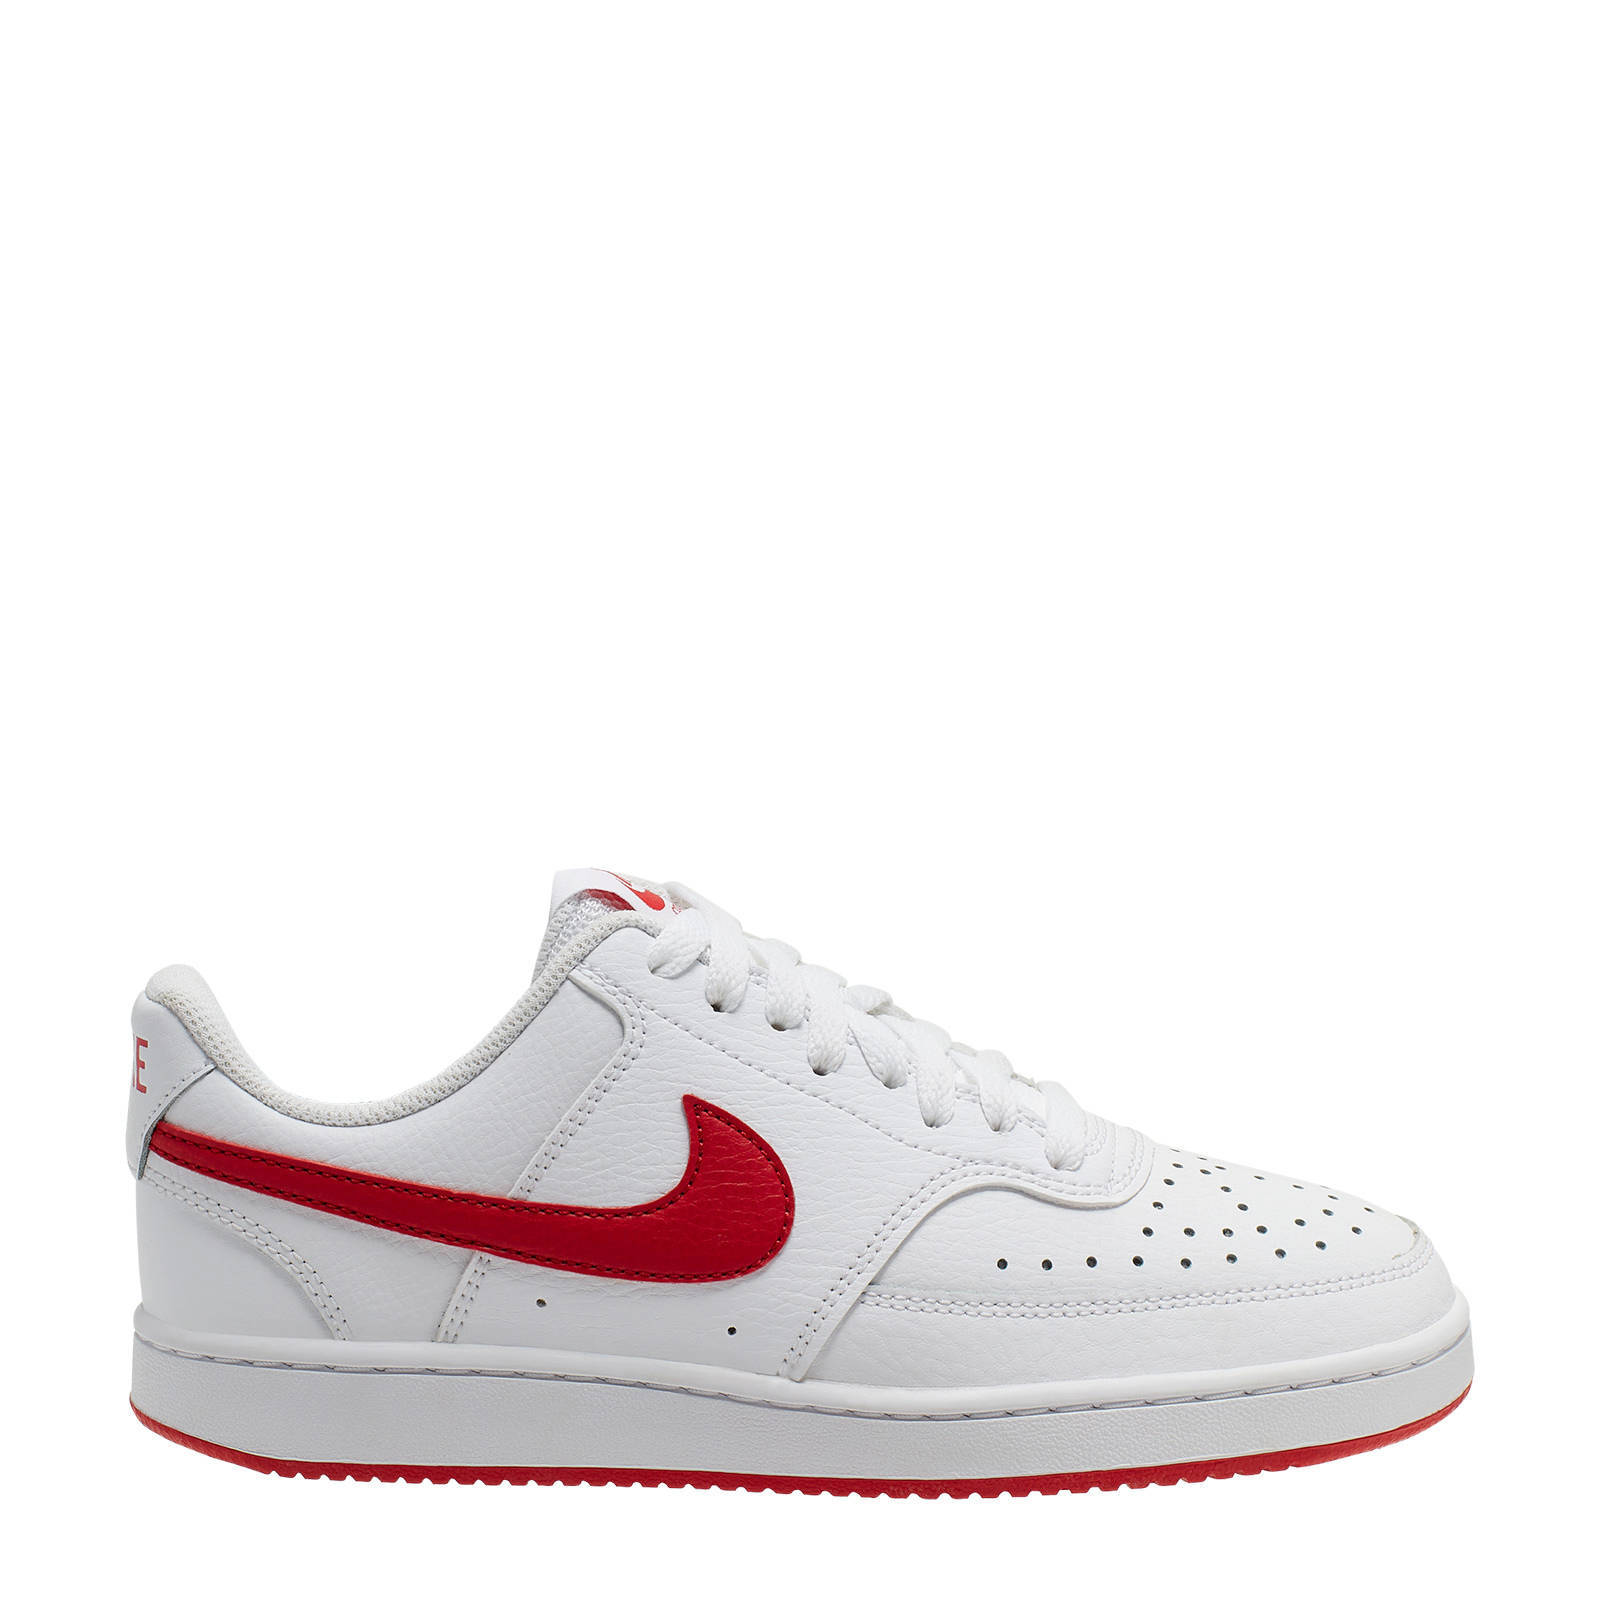 Nike Court Vision Low leren sneakers wit/rood | wehkamp